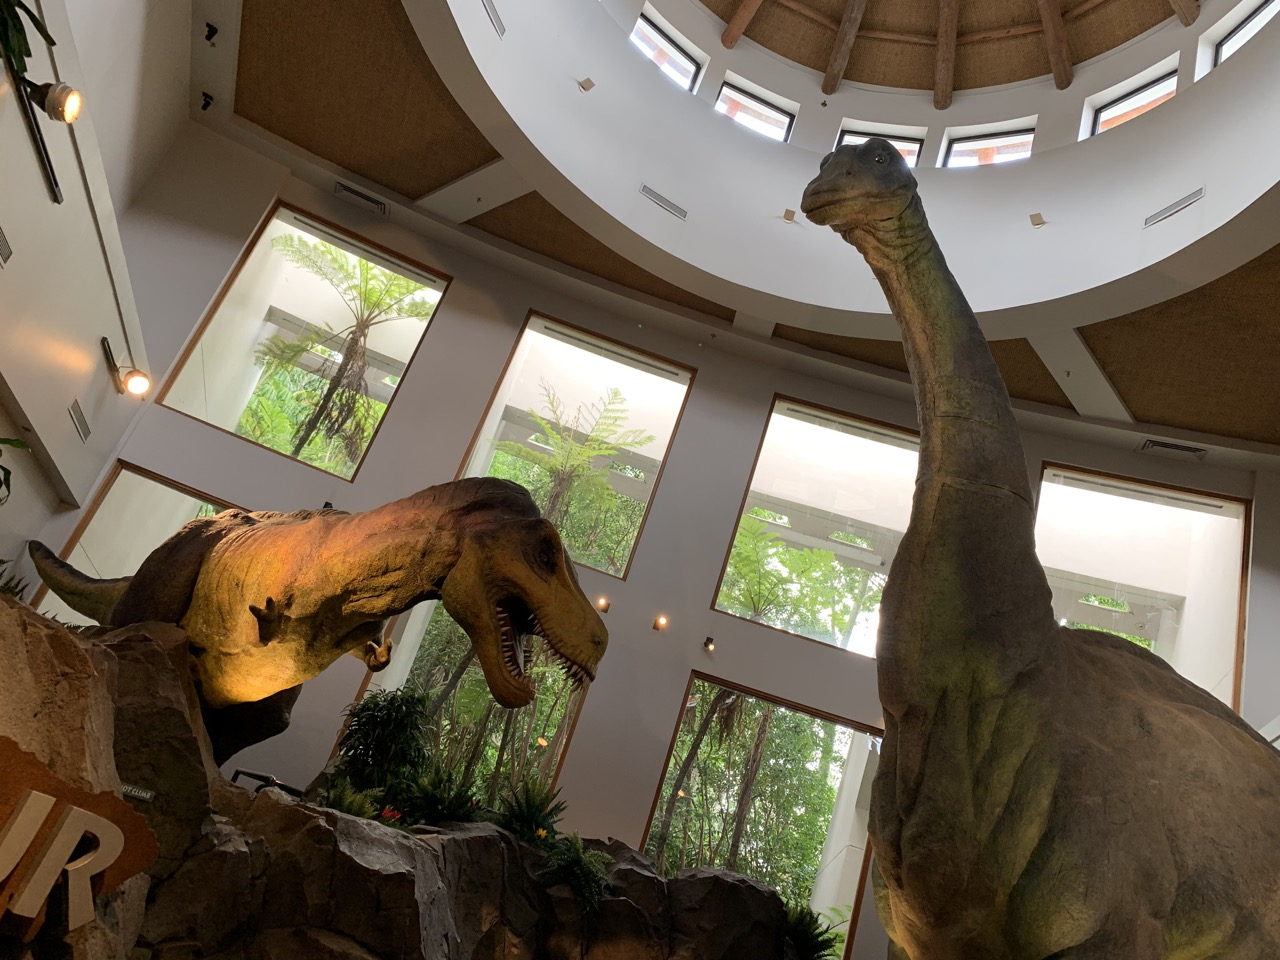 universal orlando summer 2019 trip report part 5 dinosaurs.jpeg